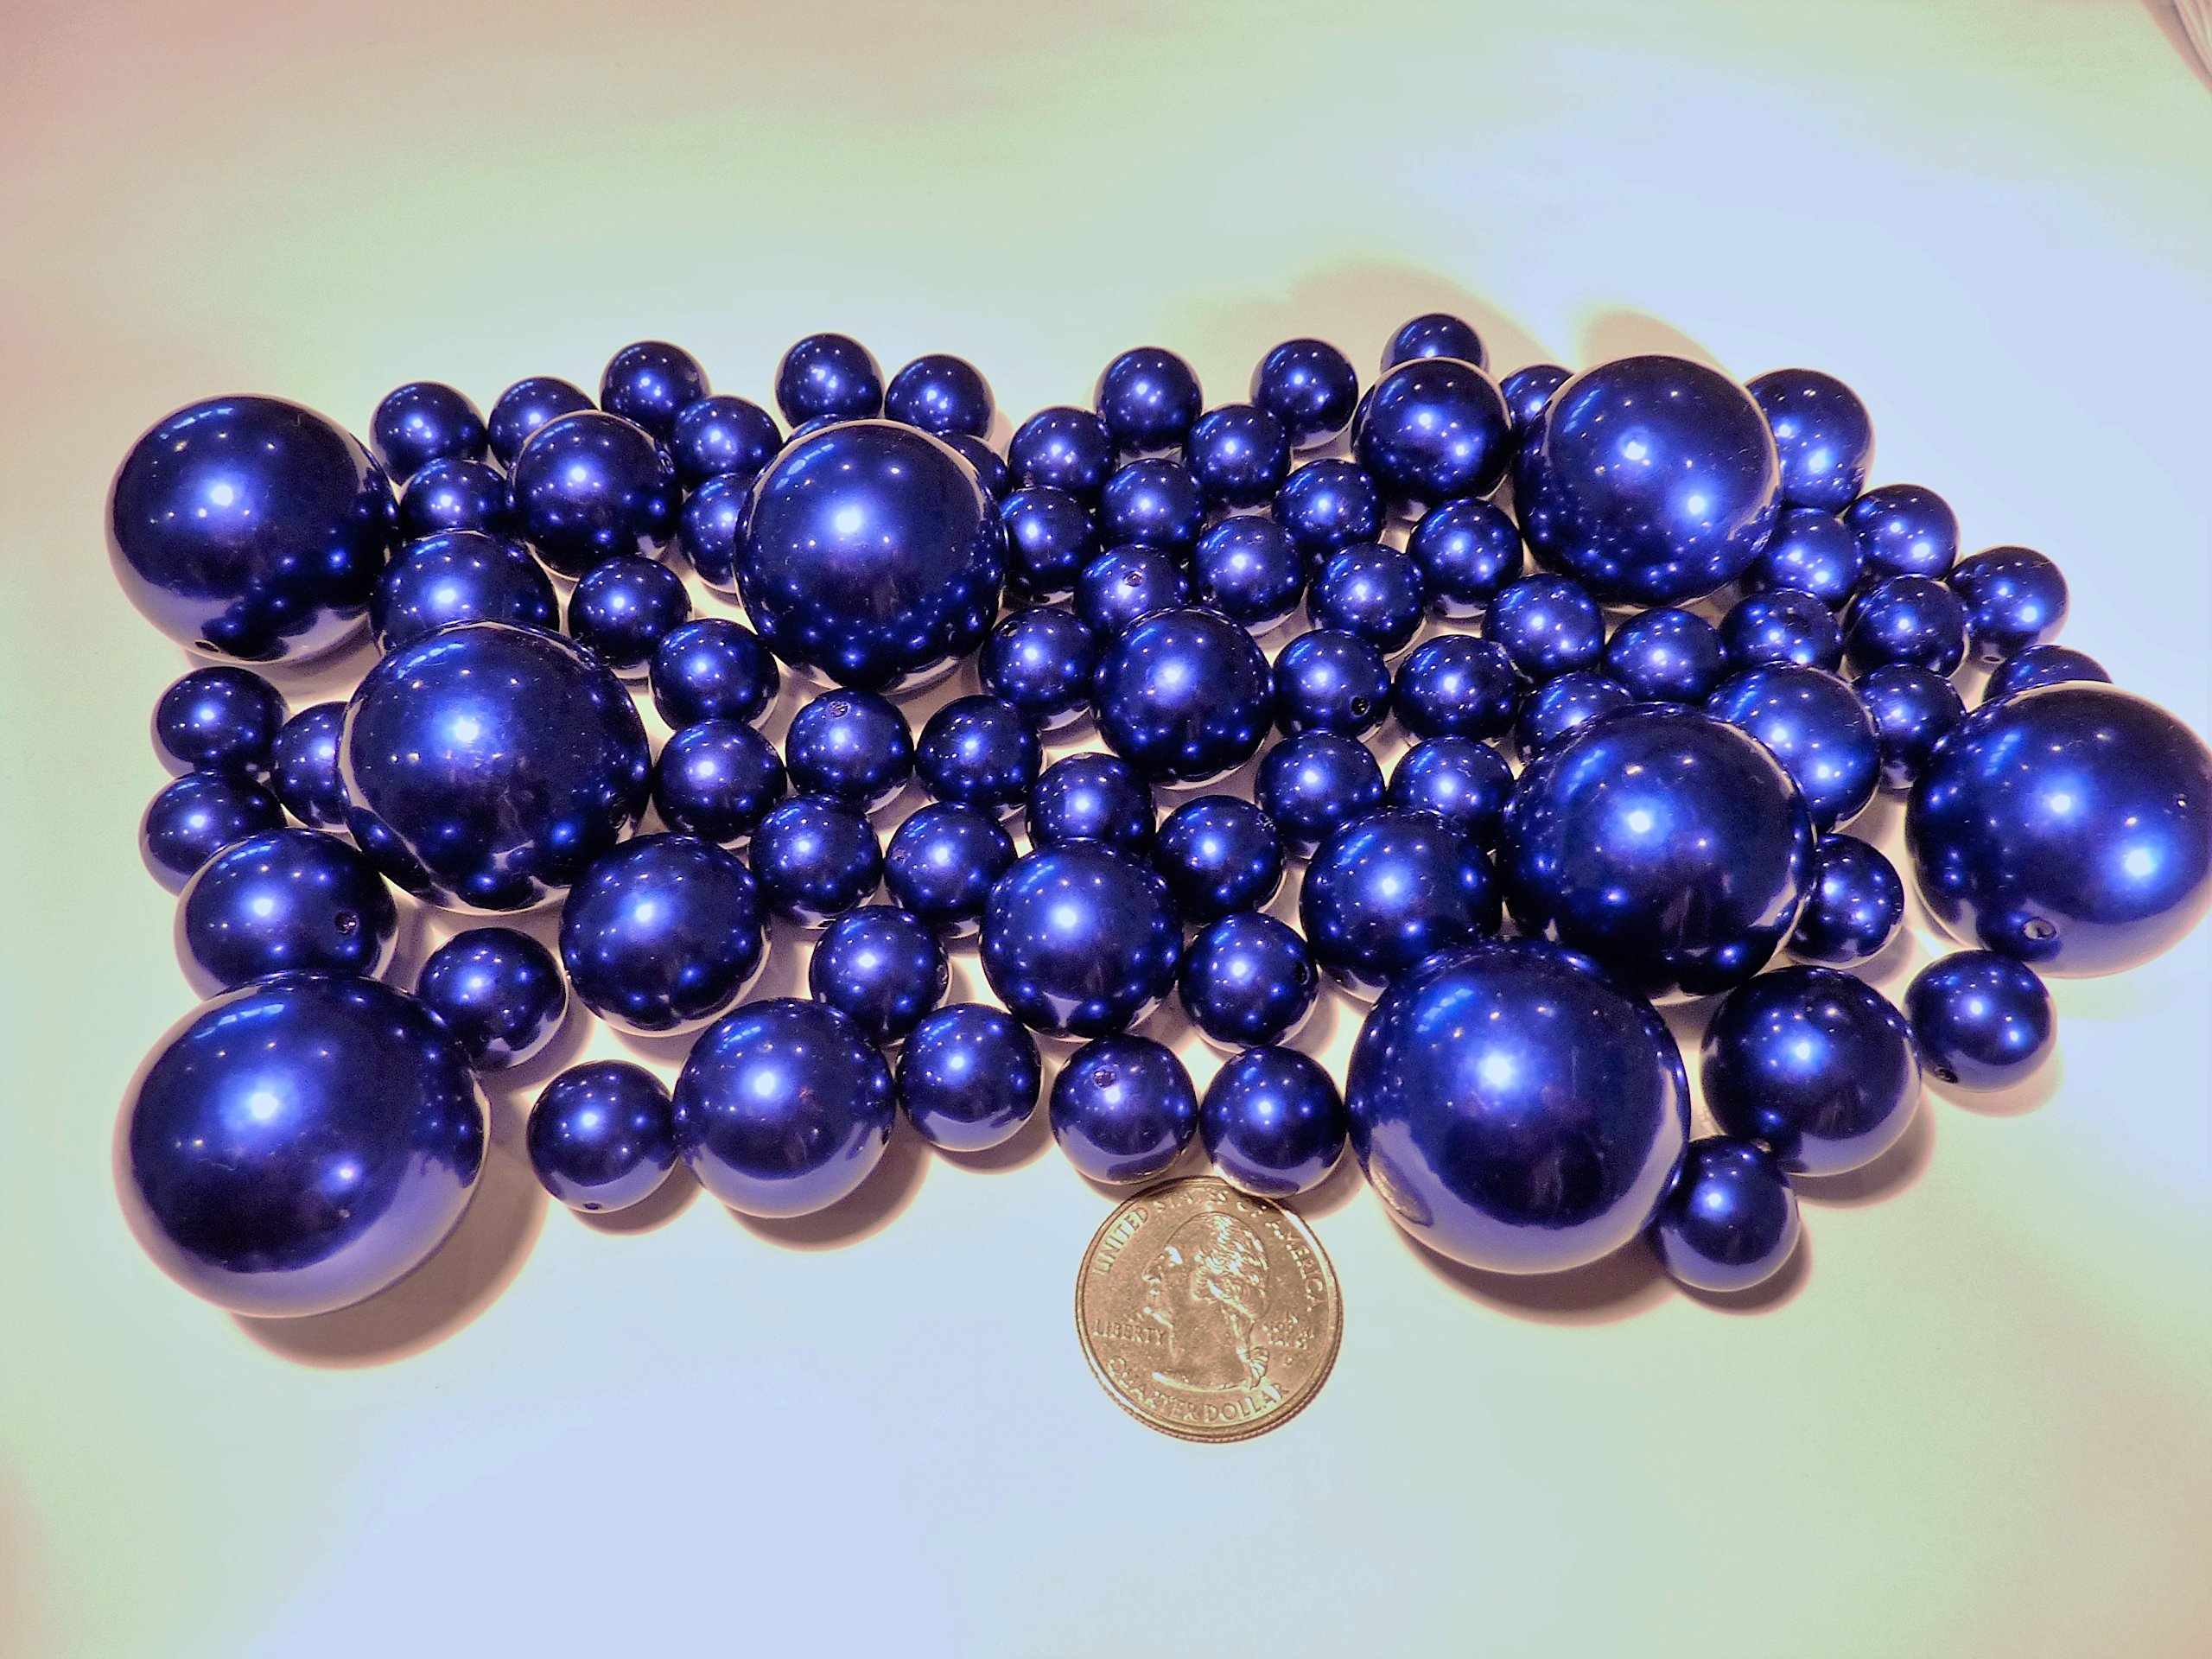 Amazon vase filler pearls for floating pearl centerpiece 50 80 jumbo assorted sizes all royal blue pearlsnavy pearlscobalt blue pearls reviewsmspy